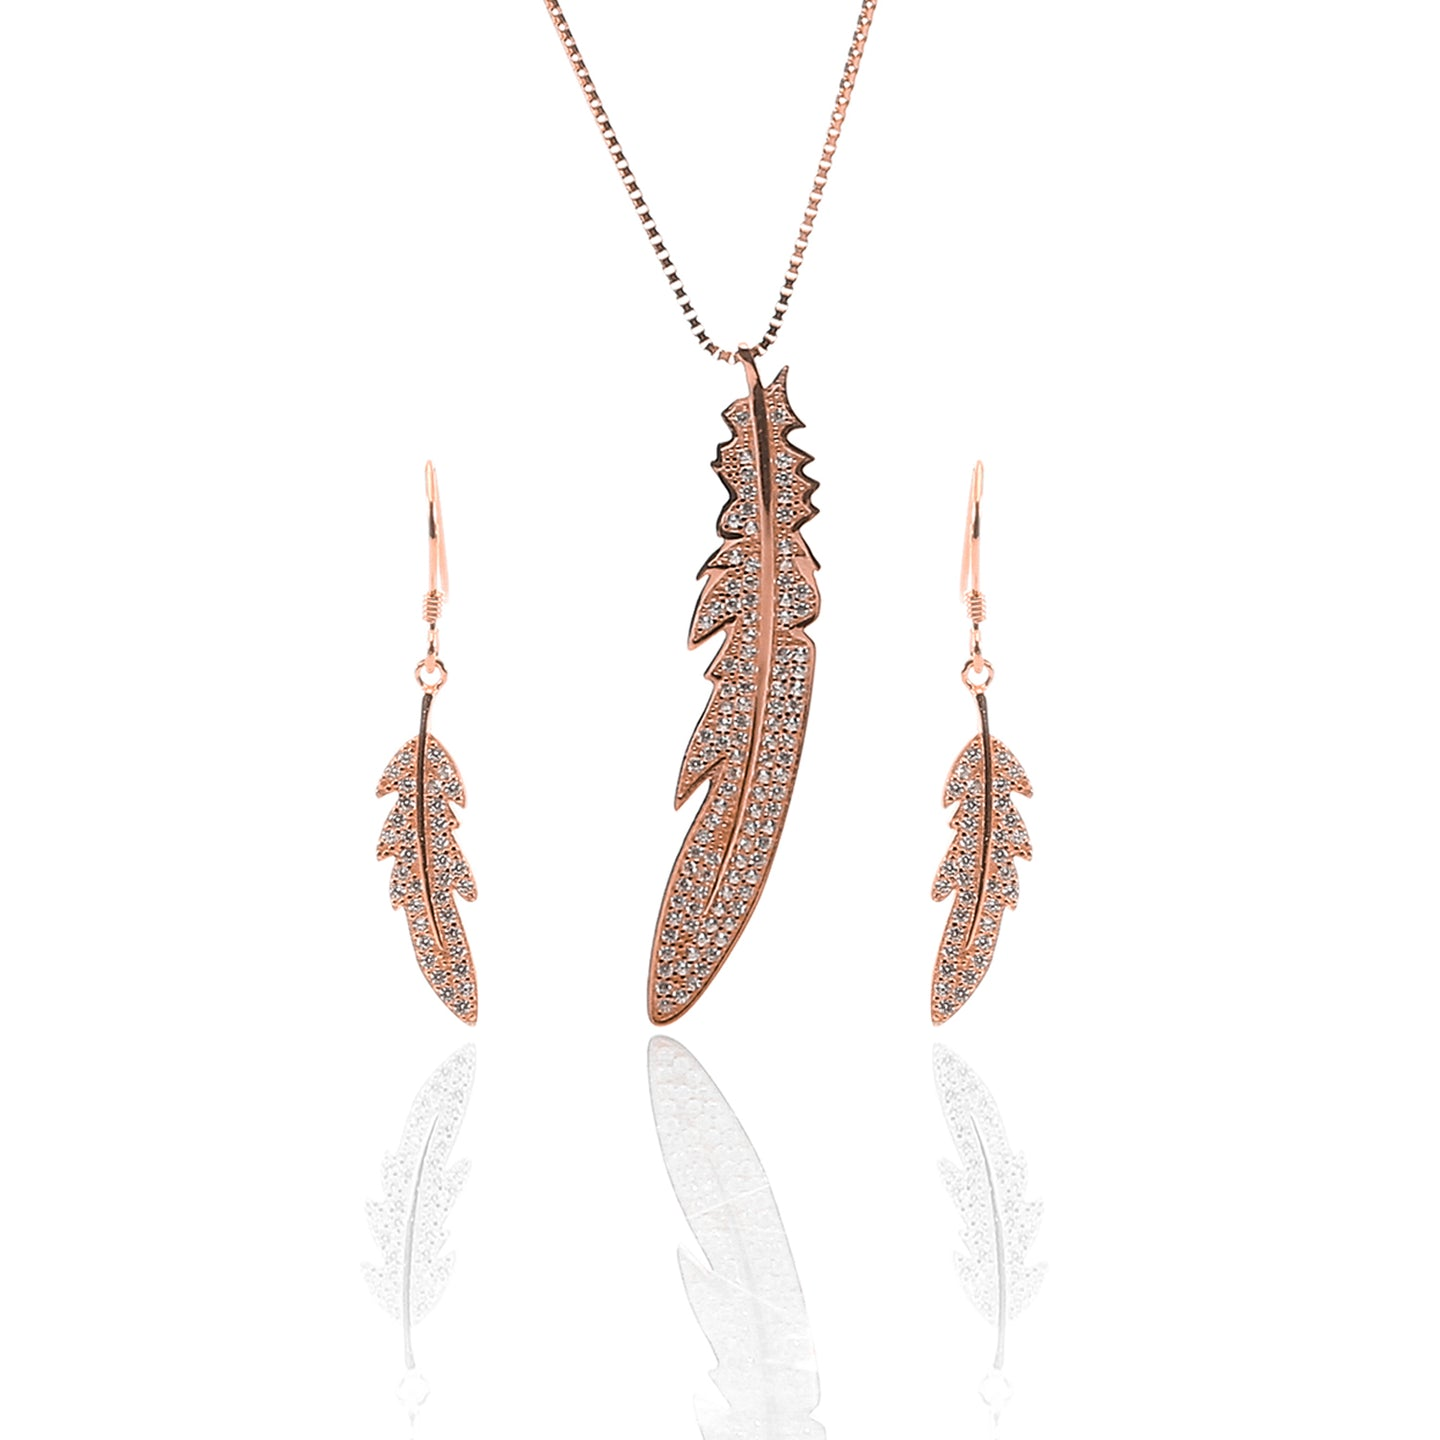 Feather Pendant Necklace and Earring Set - ARJW1015RG - ARCADIO LIFESTYLE